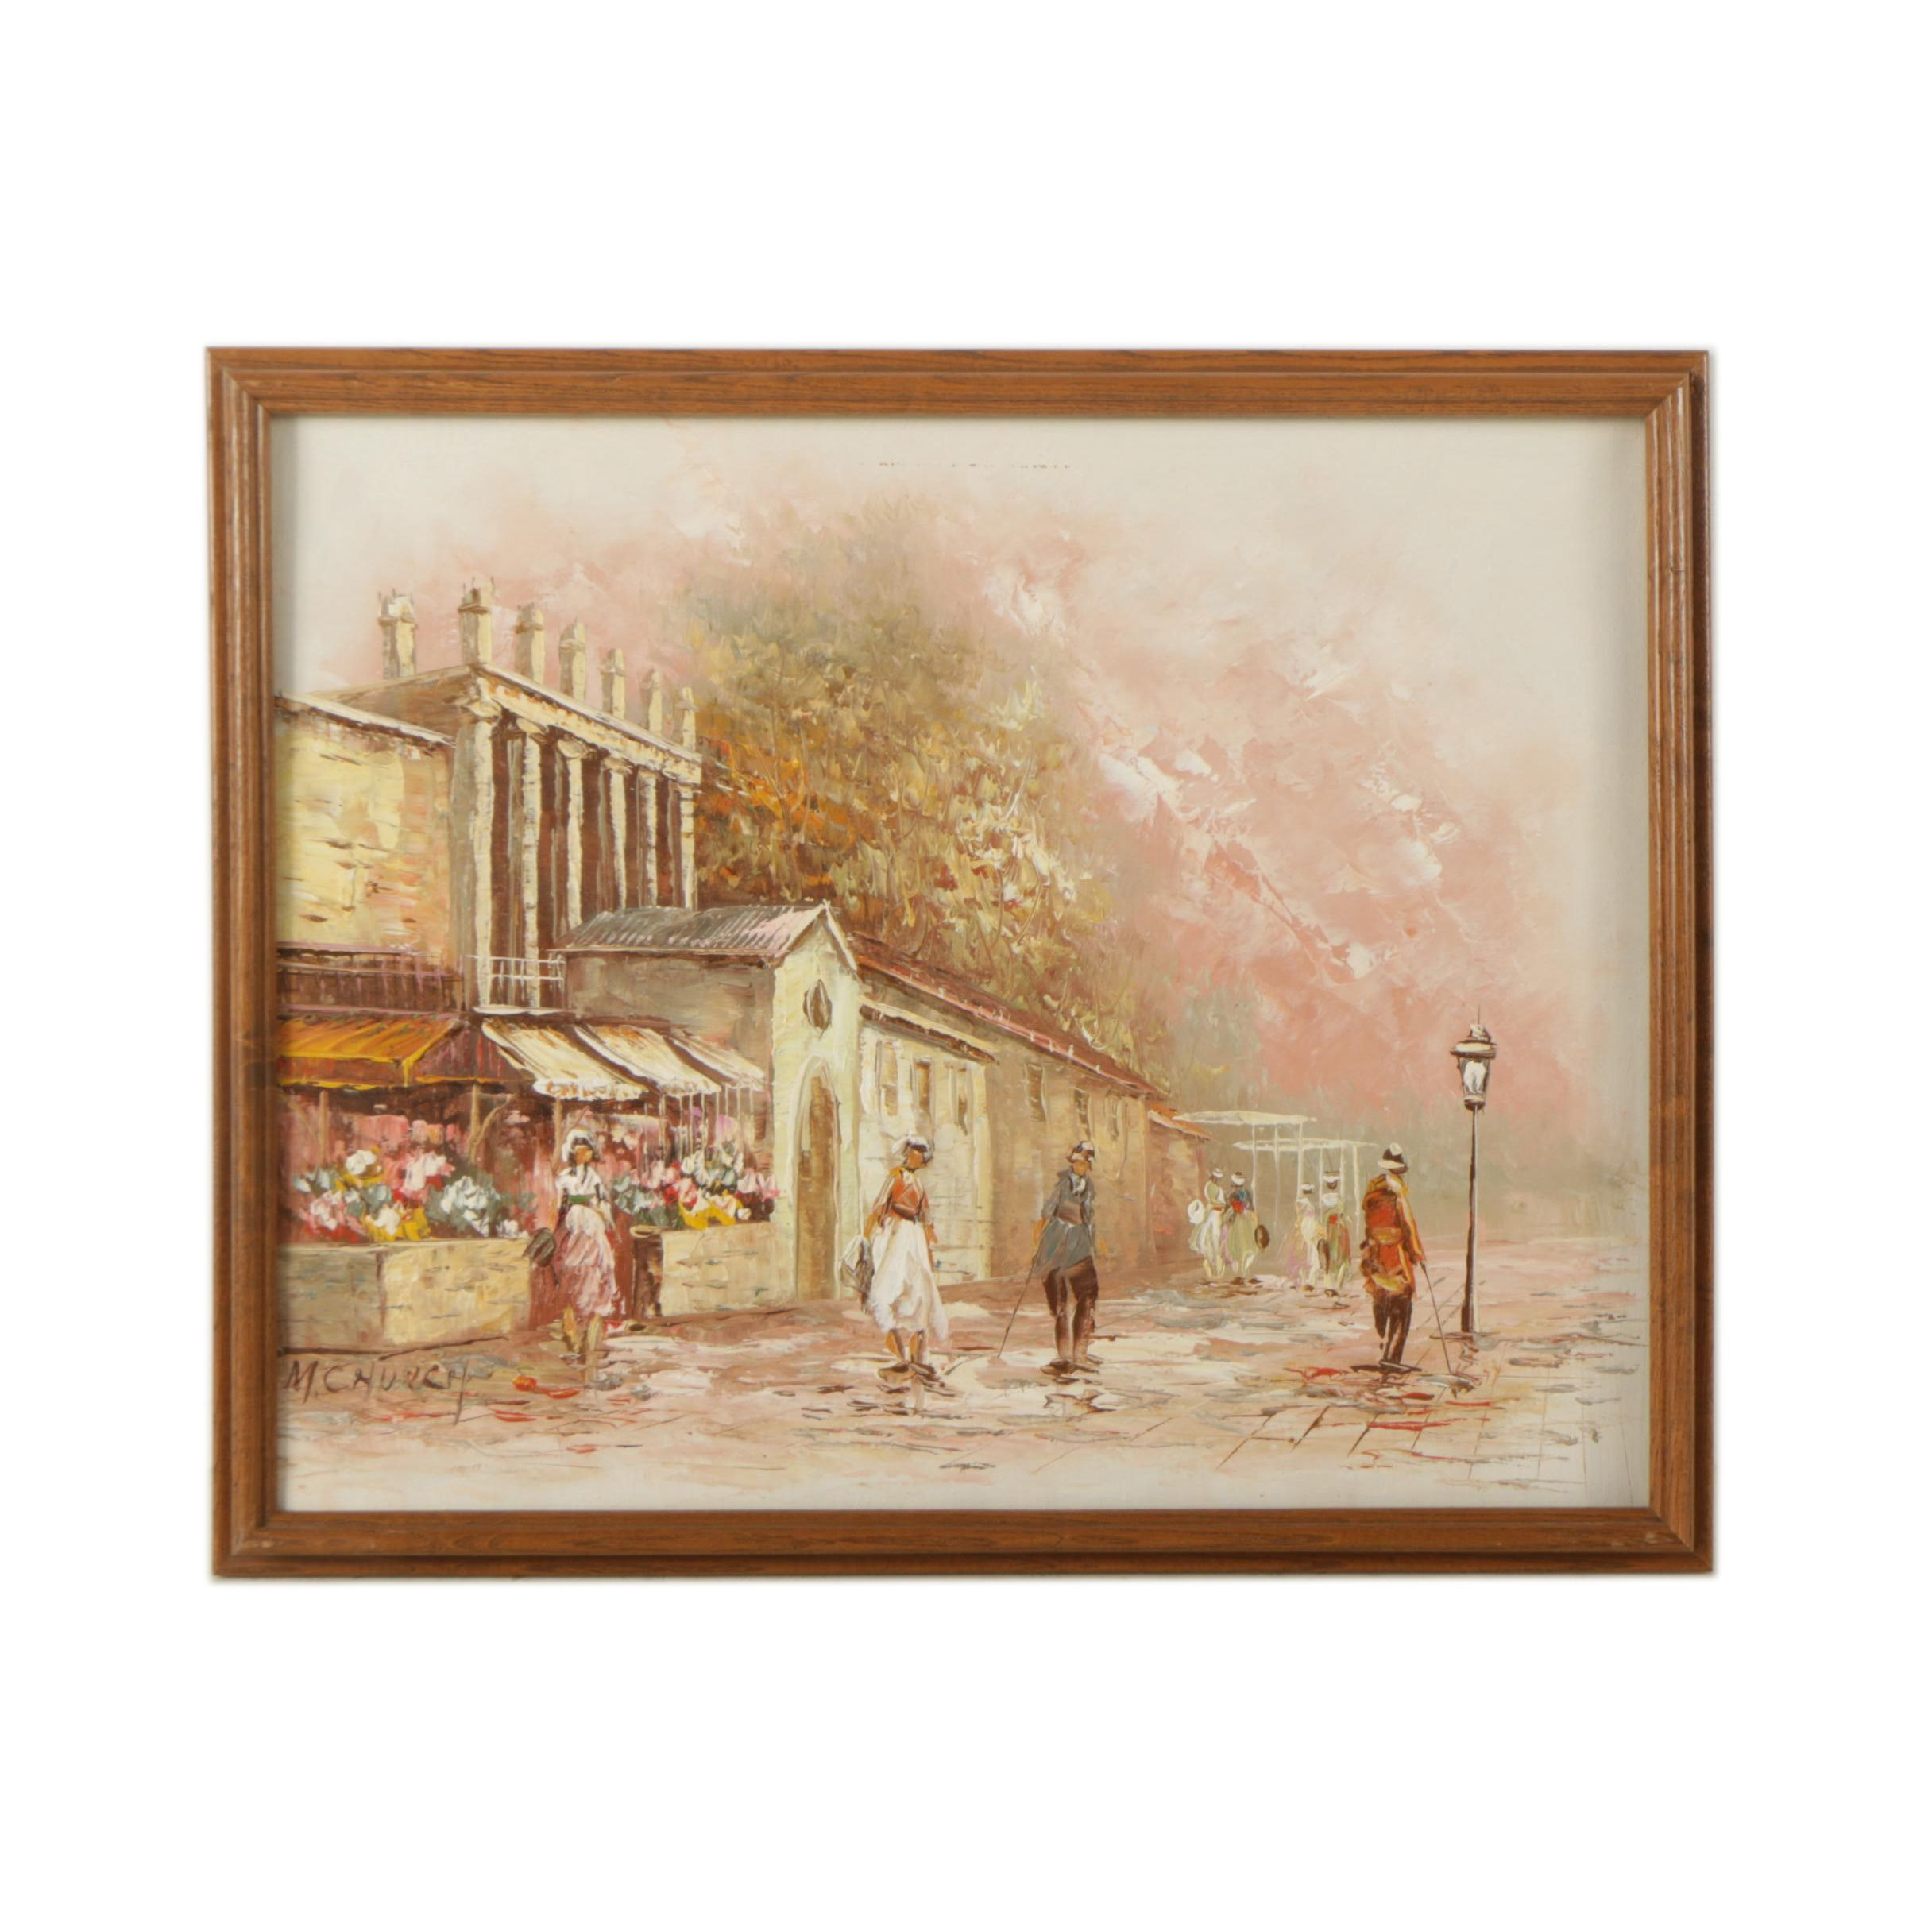 M. Church Oil Painting on Canvas of Street Scene